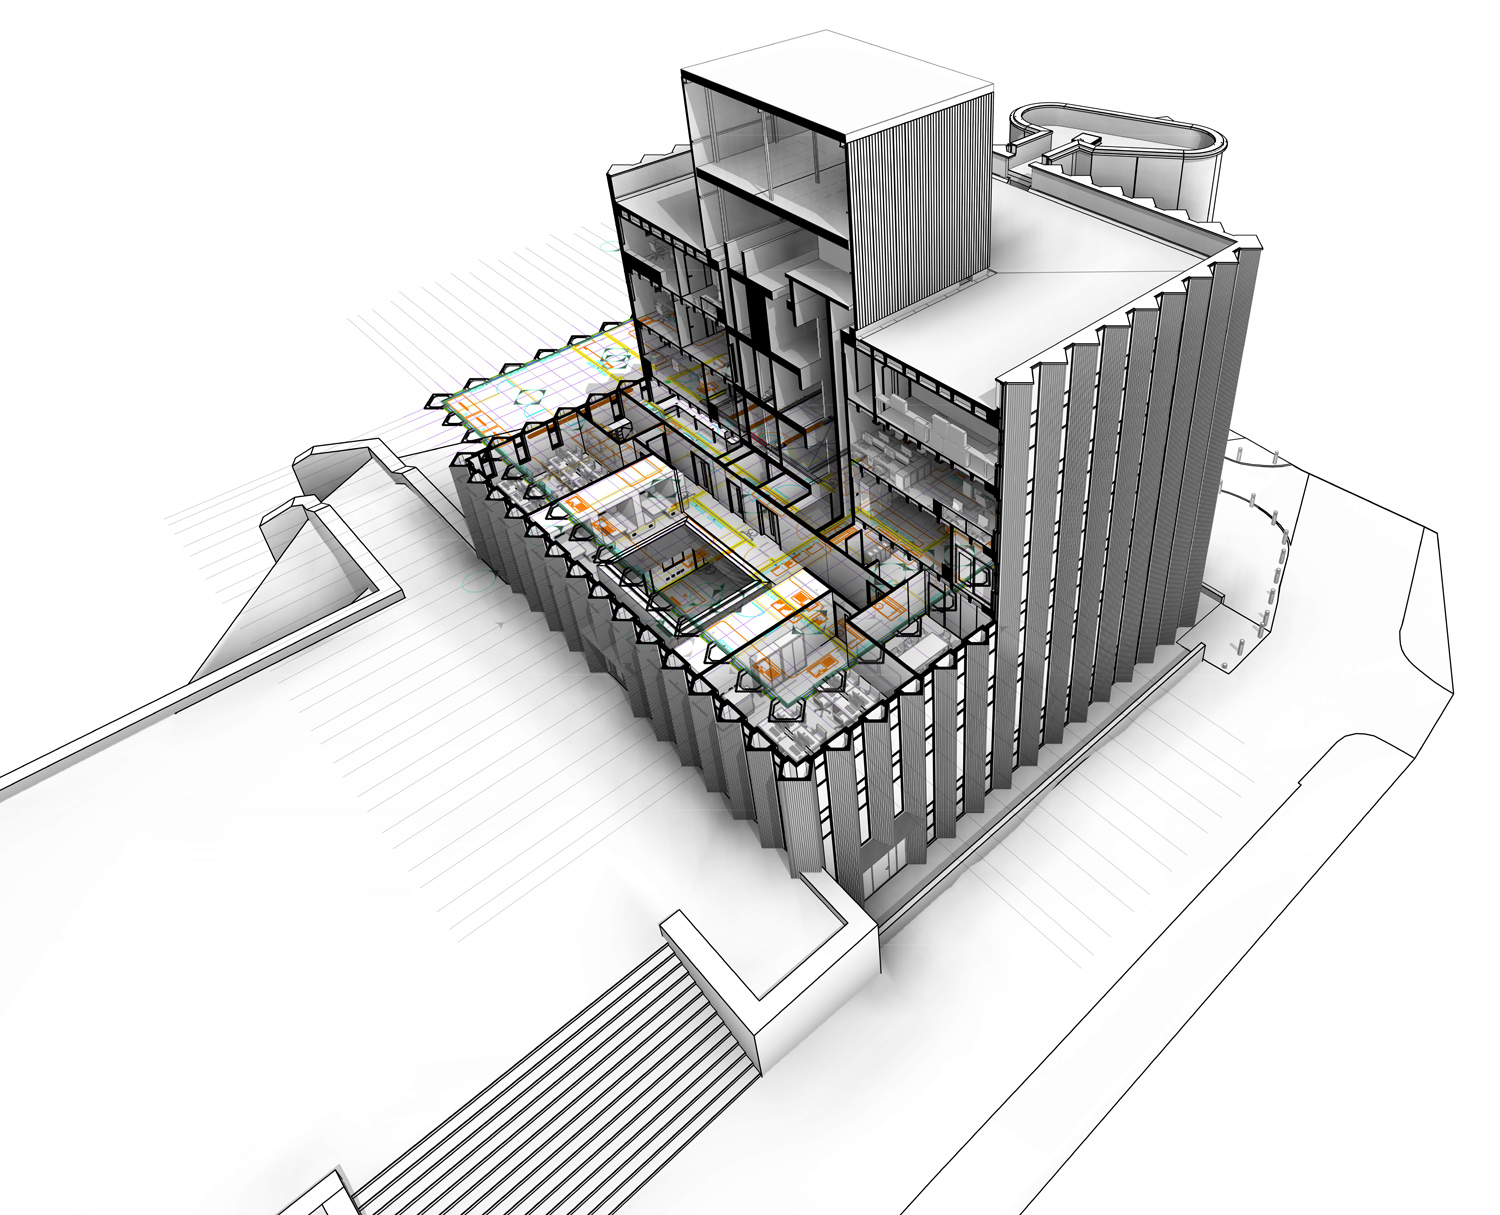 Perspective-Section-3a.jpg